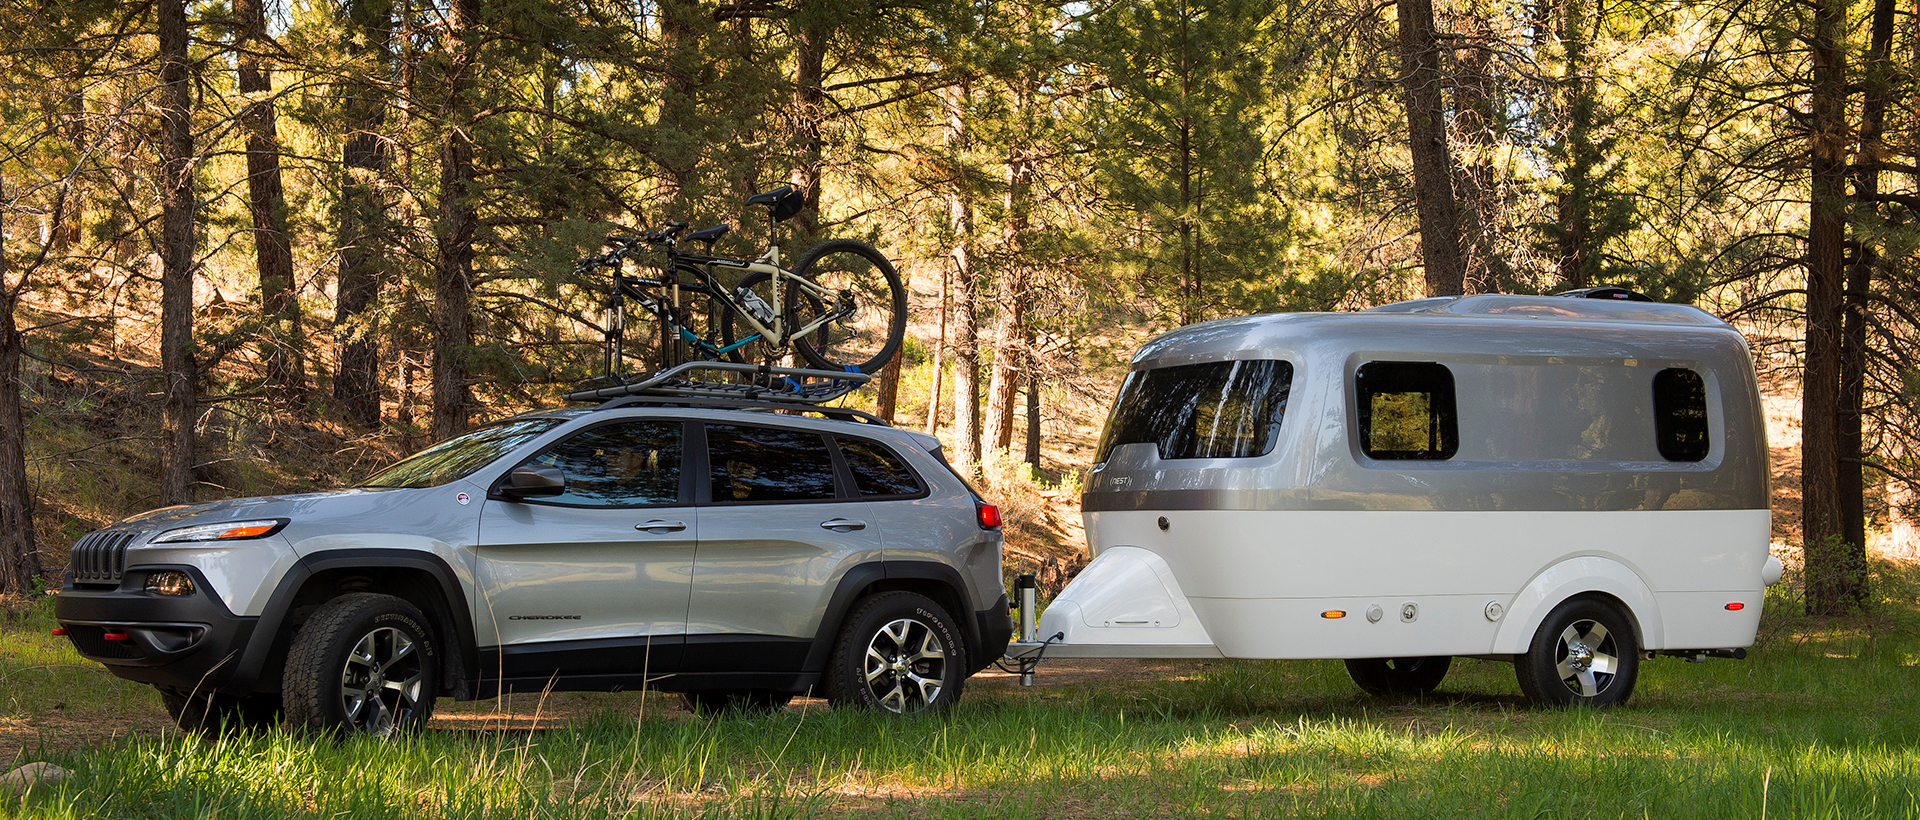 Model Nest Caravan Unites Chassis And Body In Monocoque Form